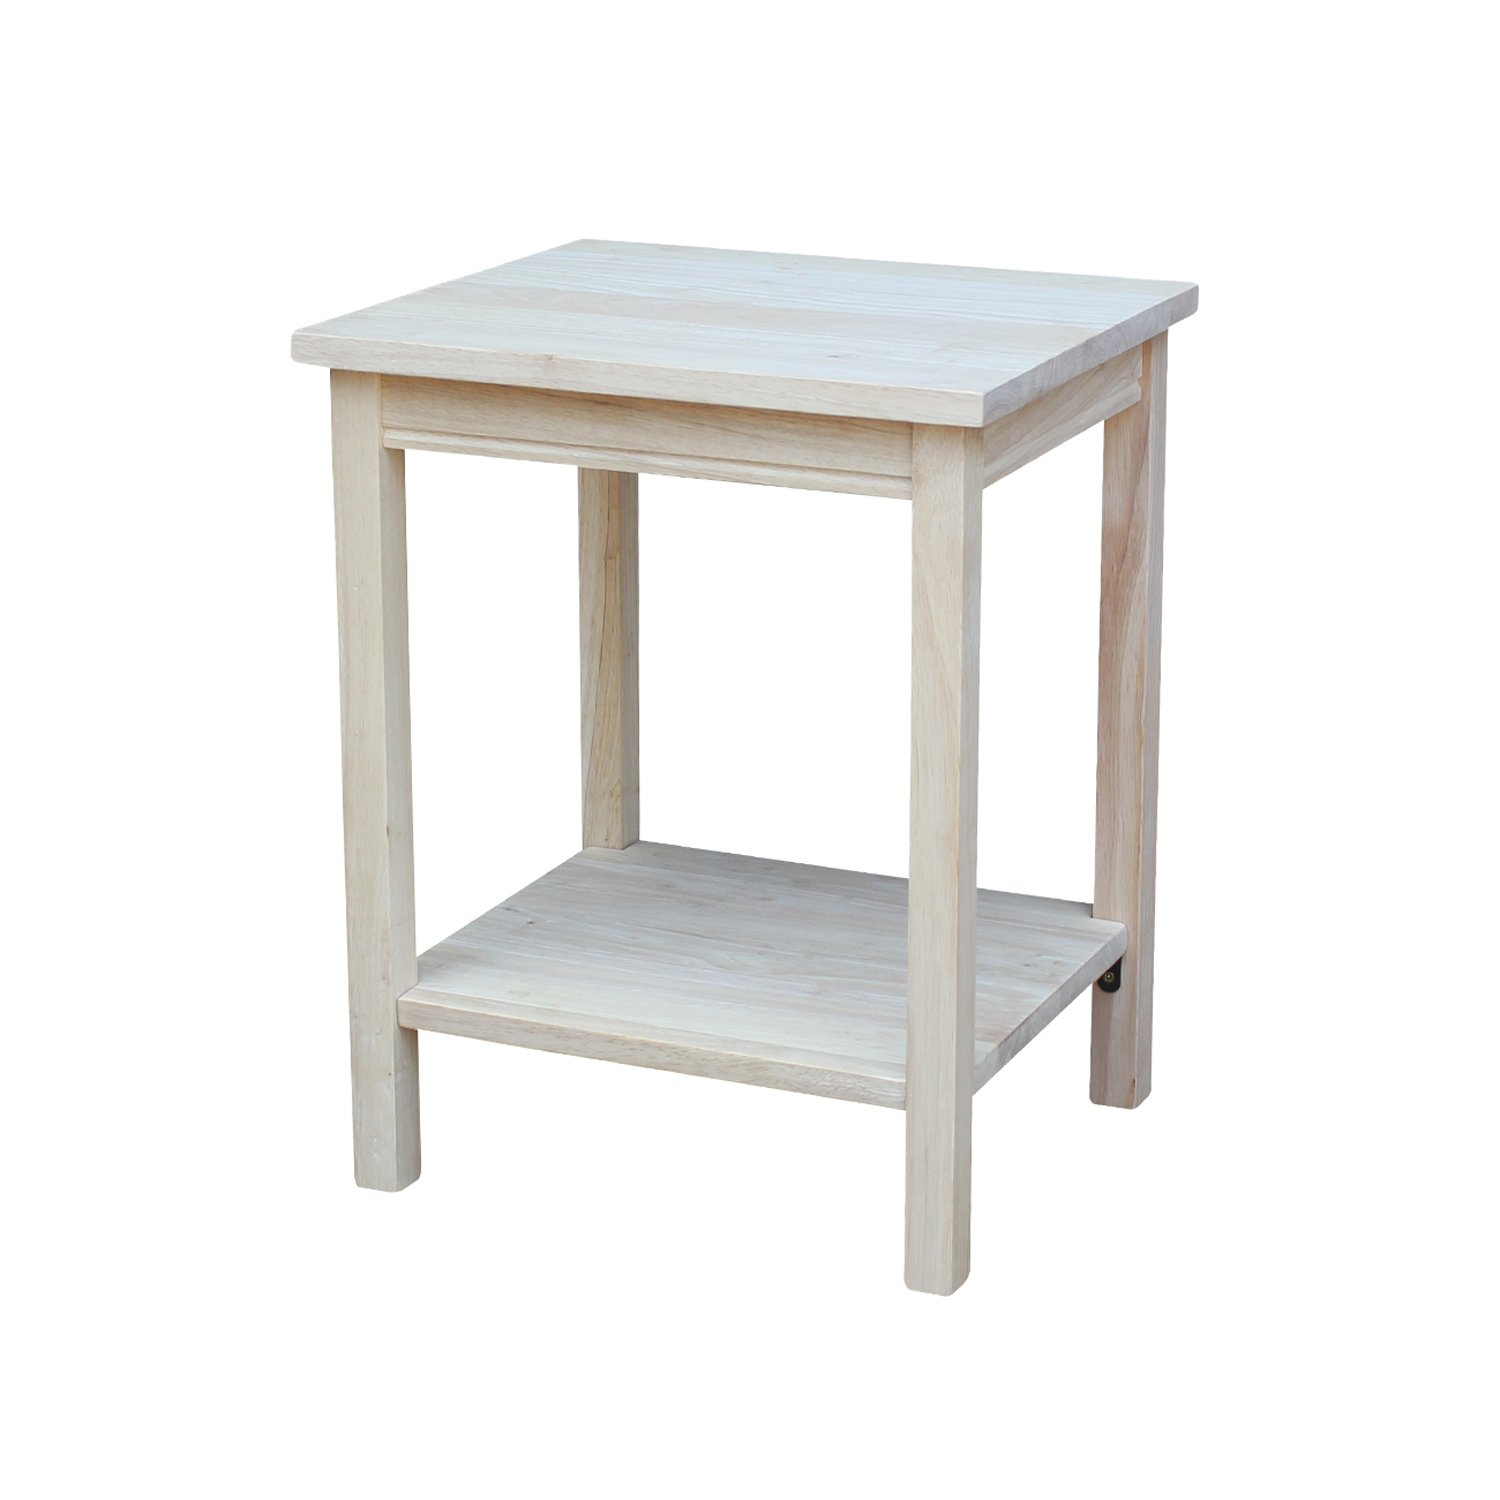 international concepts accent table unfinished furniture tables kitchen dining kmart outdoor chairs comfy chair sliding barn door entertainment center chrome hairpin legs winsome